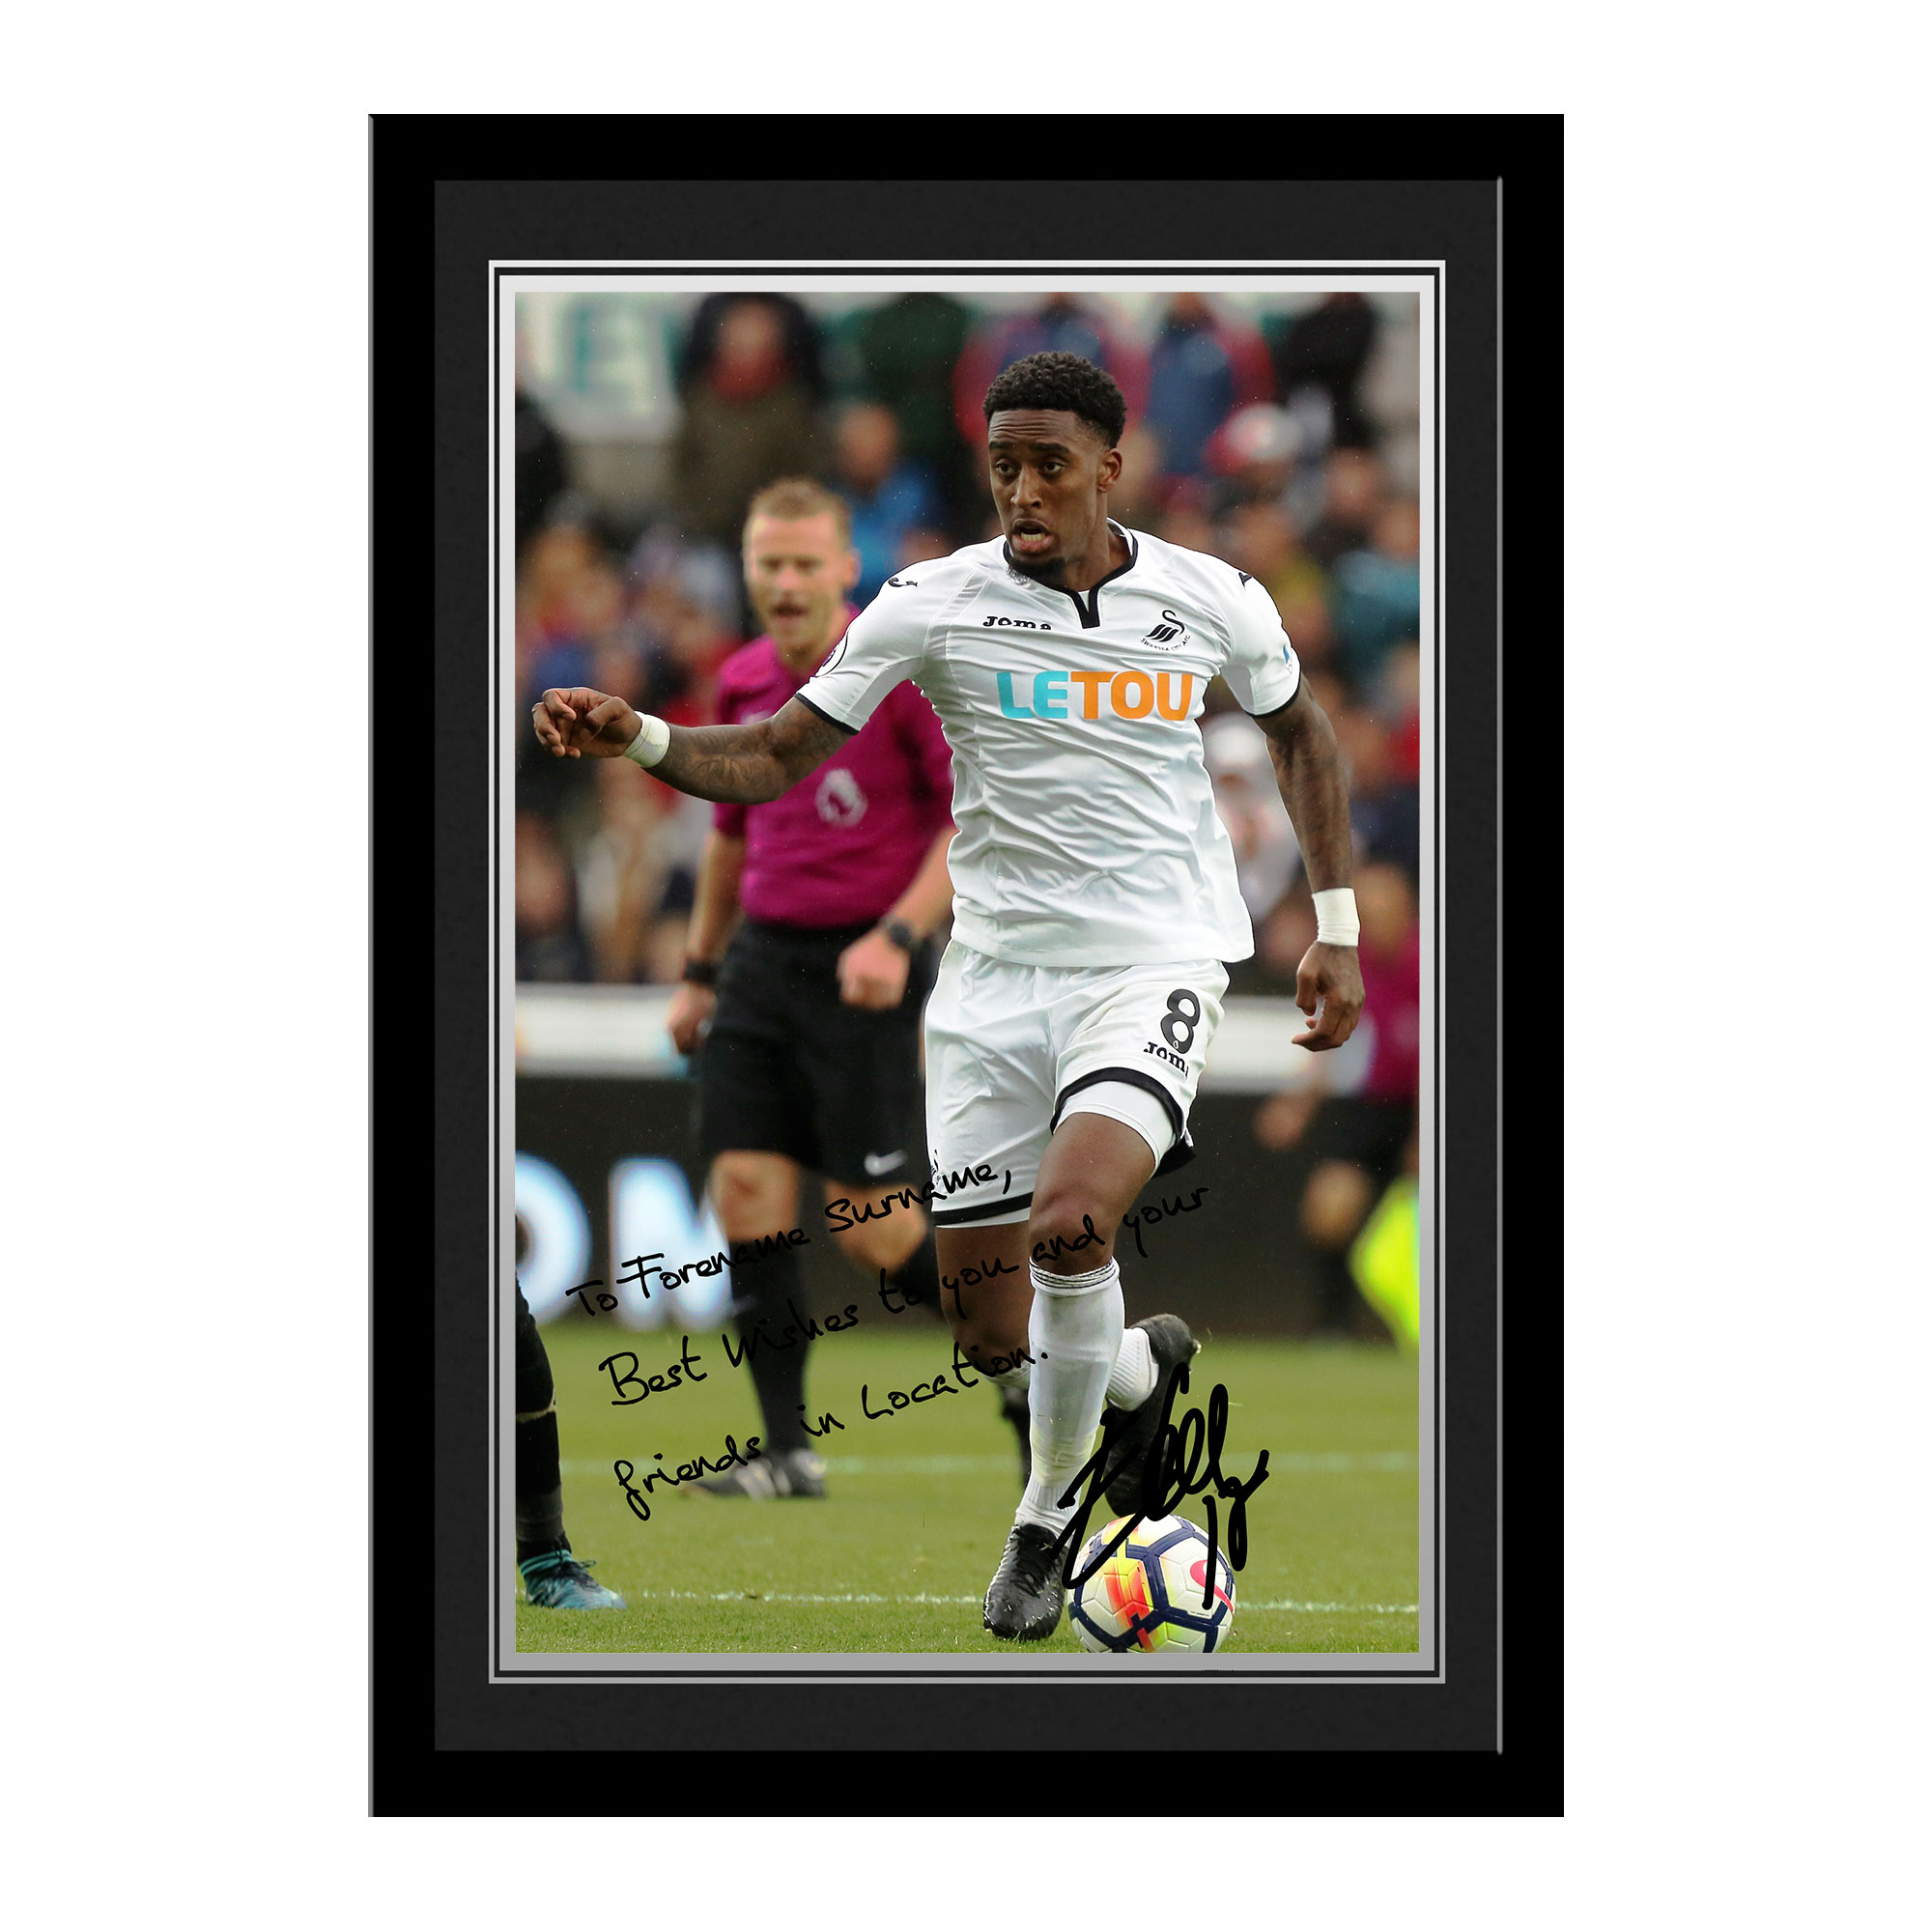 Swansea City AFC Fer Autograph Photo Framed